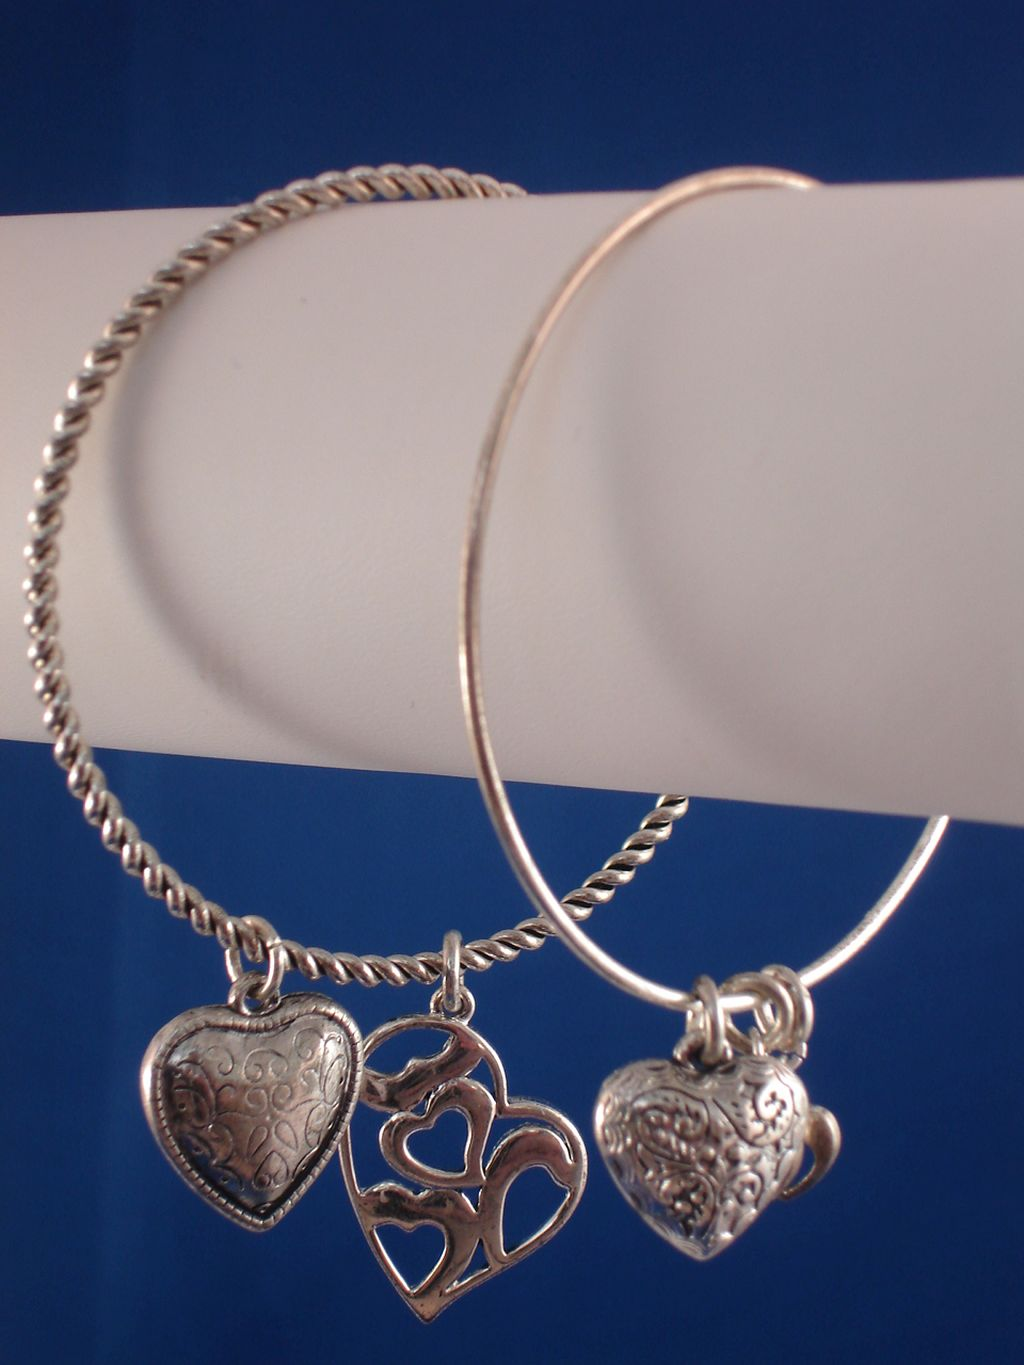 Christian Faith Inspired, Set of Two Bangle Bracelets, Heart Charms, Sterling Silver Plated